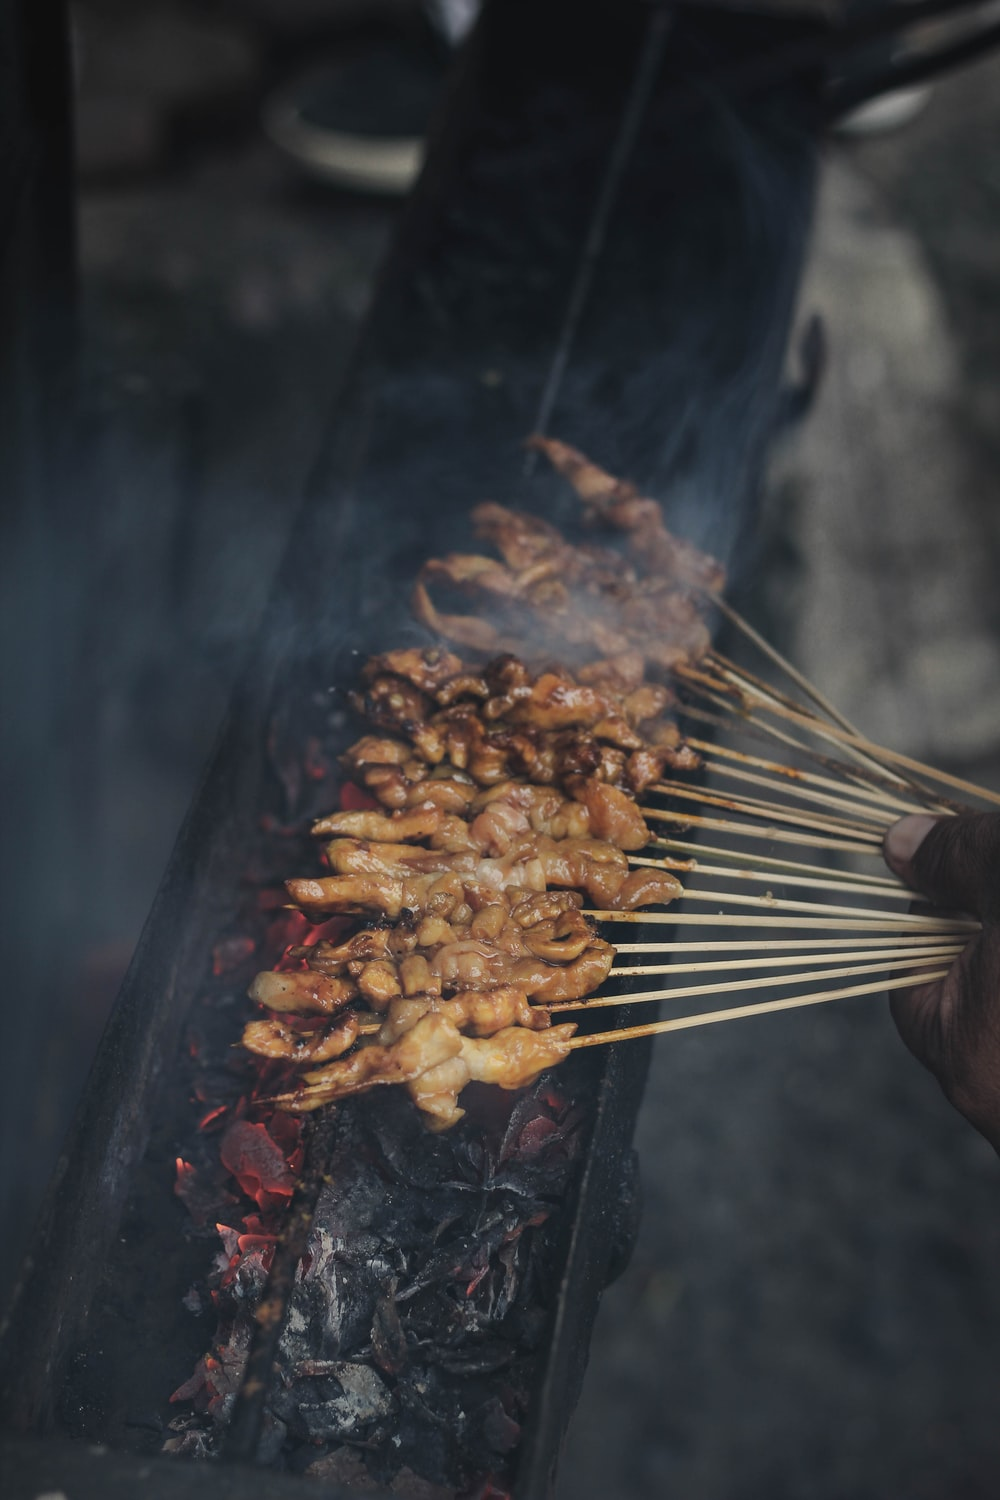 person holding skewered meat